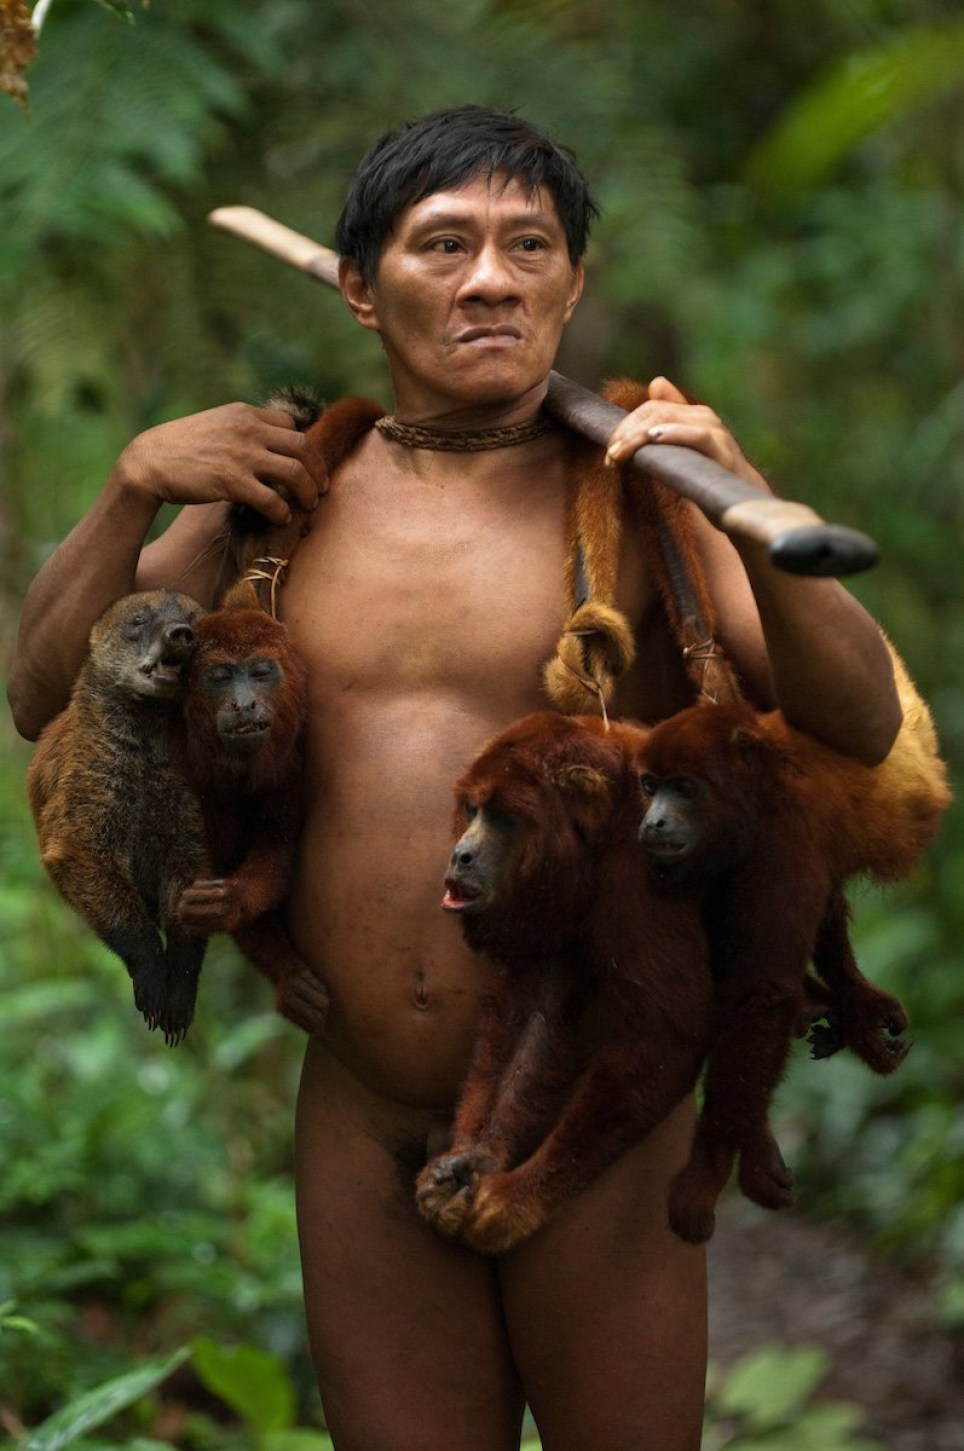 SPECTACULAR images offering insight into the lives of the Huaorani people in the Ecuadorian Amazon have been revealed showing how they use traditional methods to hunt monkeys for food. The collection of pictures show people with dead monkeys hanging around their necks and another person in the trees in action trying to catch their next meal with a blow gun. Other shots show a man creating an ornate headpiece and woman knitting a hat. Other shots offer further insight into what the people eat with bare toucans, the bird made famous through advertising the Irish stout Guinness, hanging from their necks and a peccary pig roasting on an open flame. The stunning pictures were taken by conservation photographer, Pete Oxford (58) from Torquay, Devon in the Ecuadorian Amazon. To take his shots, Pete used a Nikon camera. Pete Oxford / mediadrumworld.com